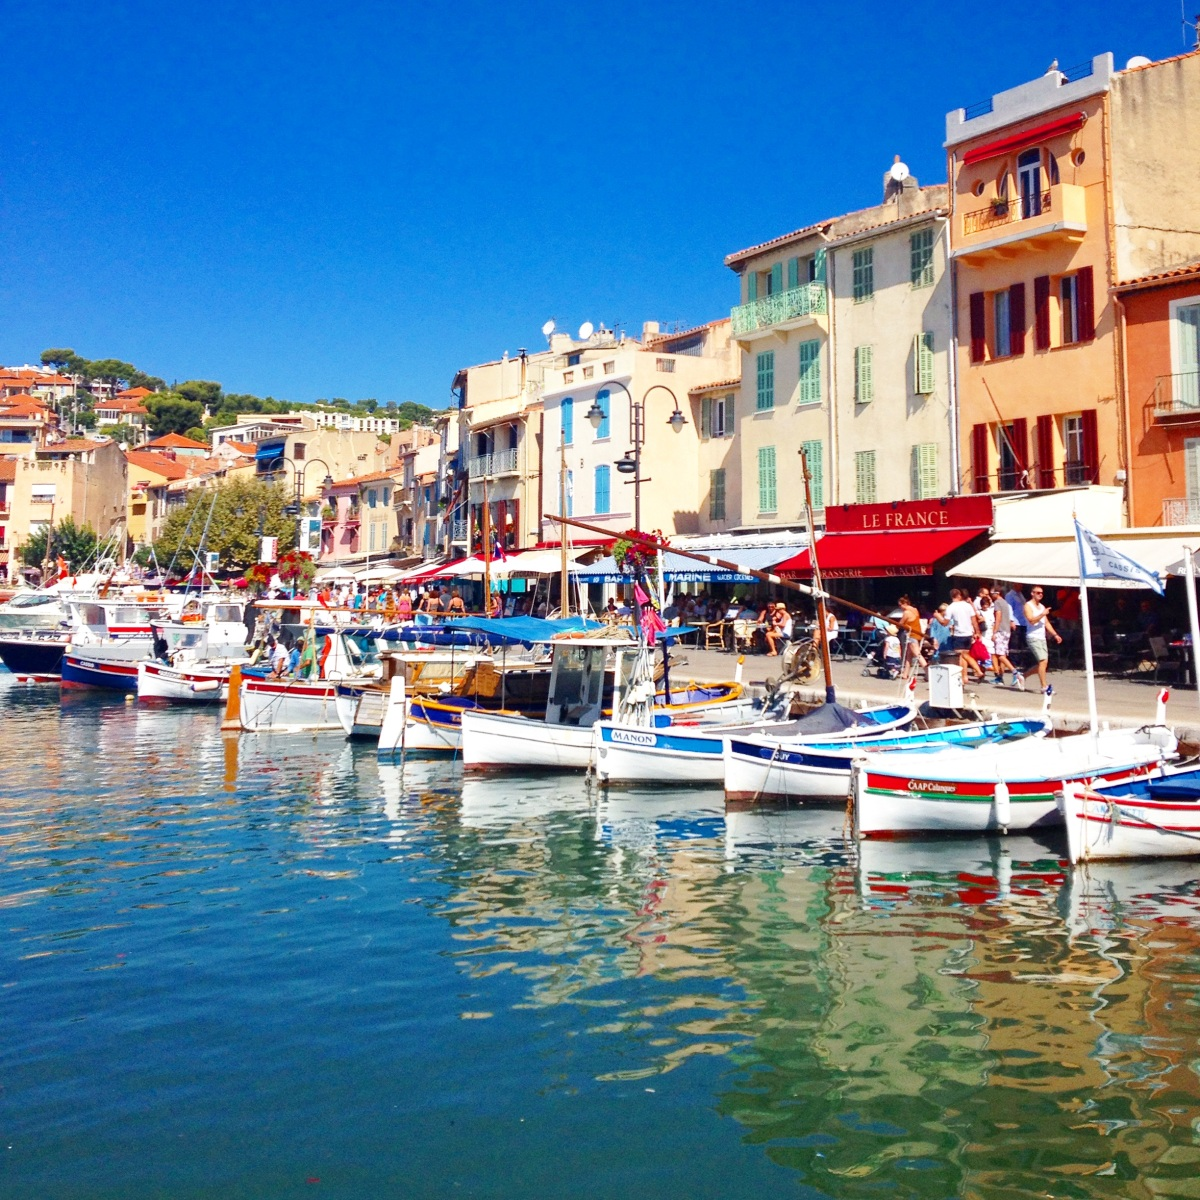 One day in Cassis